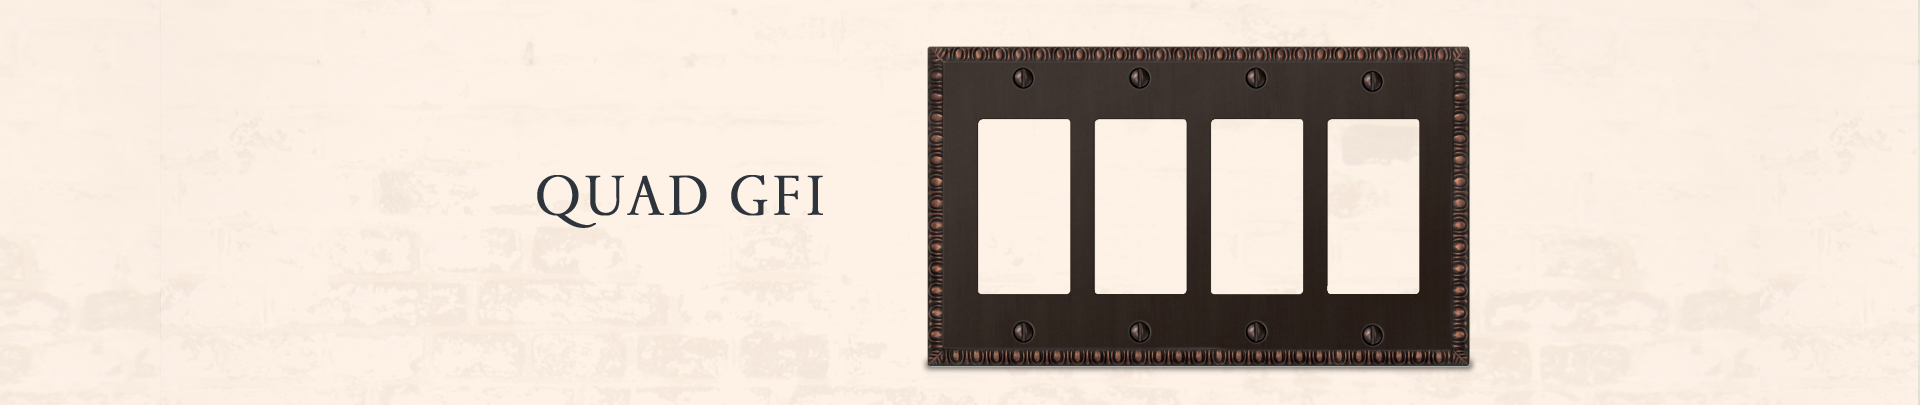 switchplates-quad-gfi.png